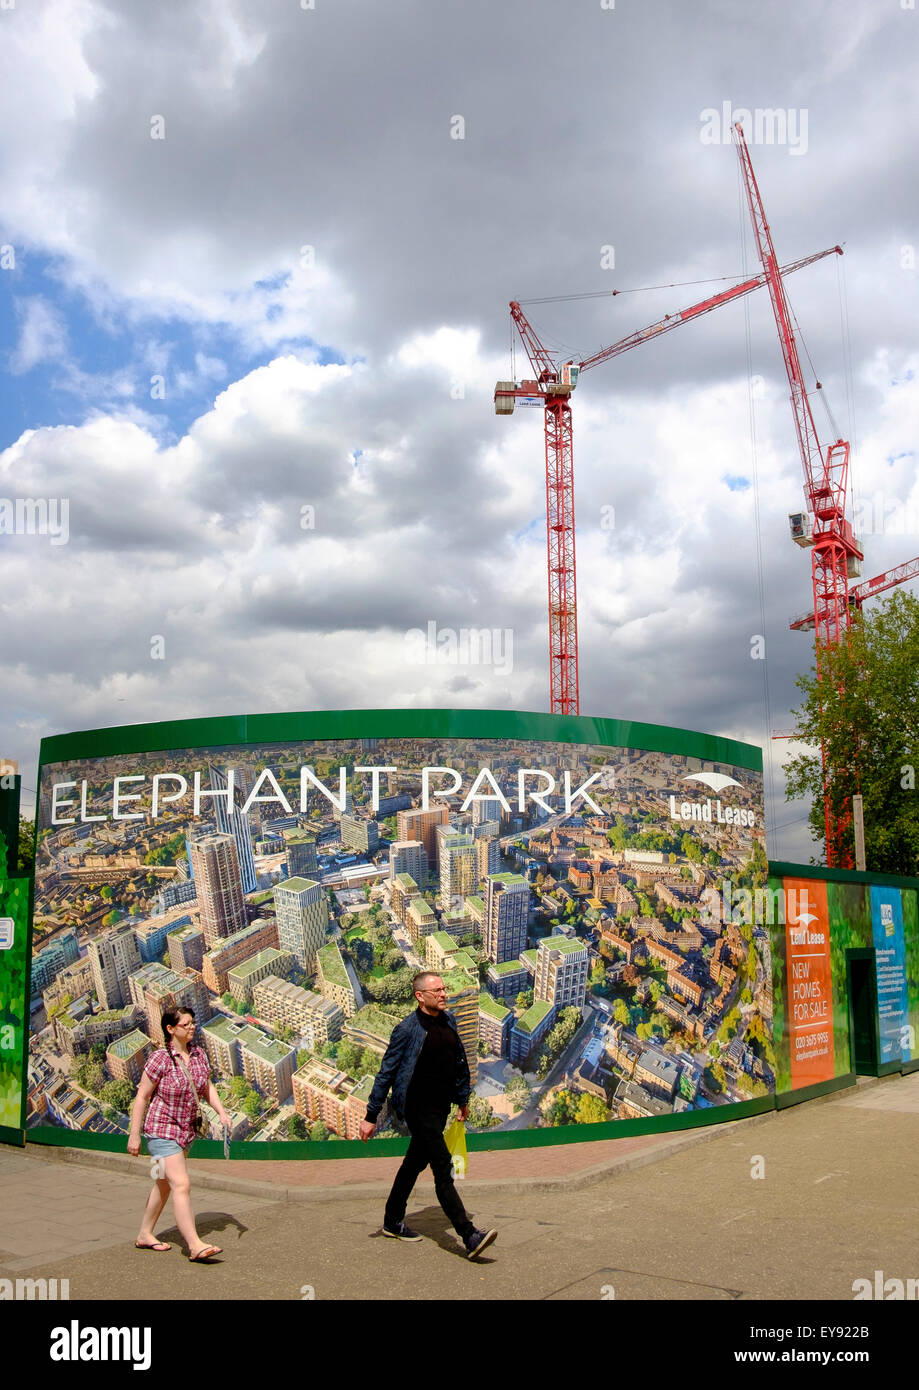 Hoarding promoting Elephant Park, a major inner city redevelopment scheme at Elephant and Castle, London - Stock Image